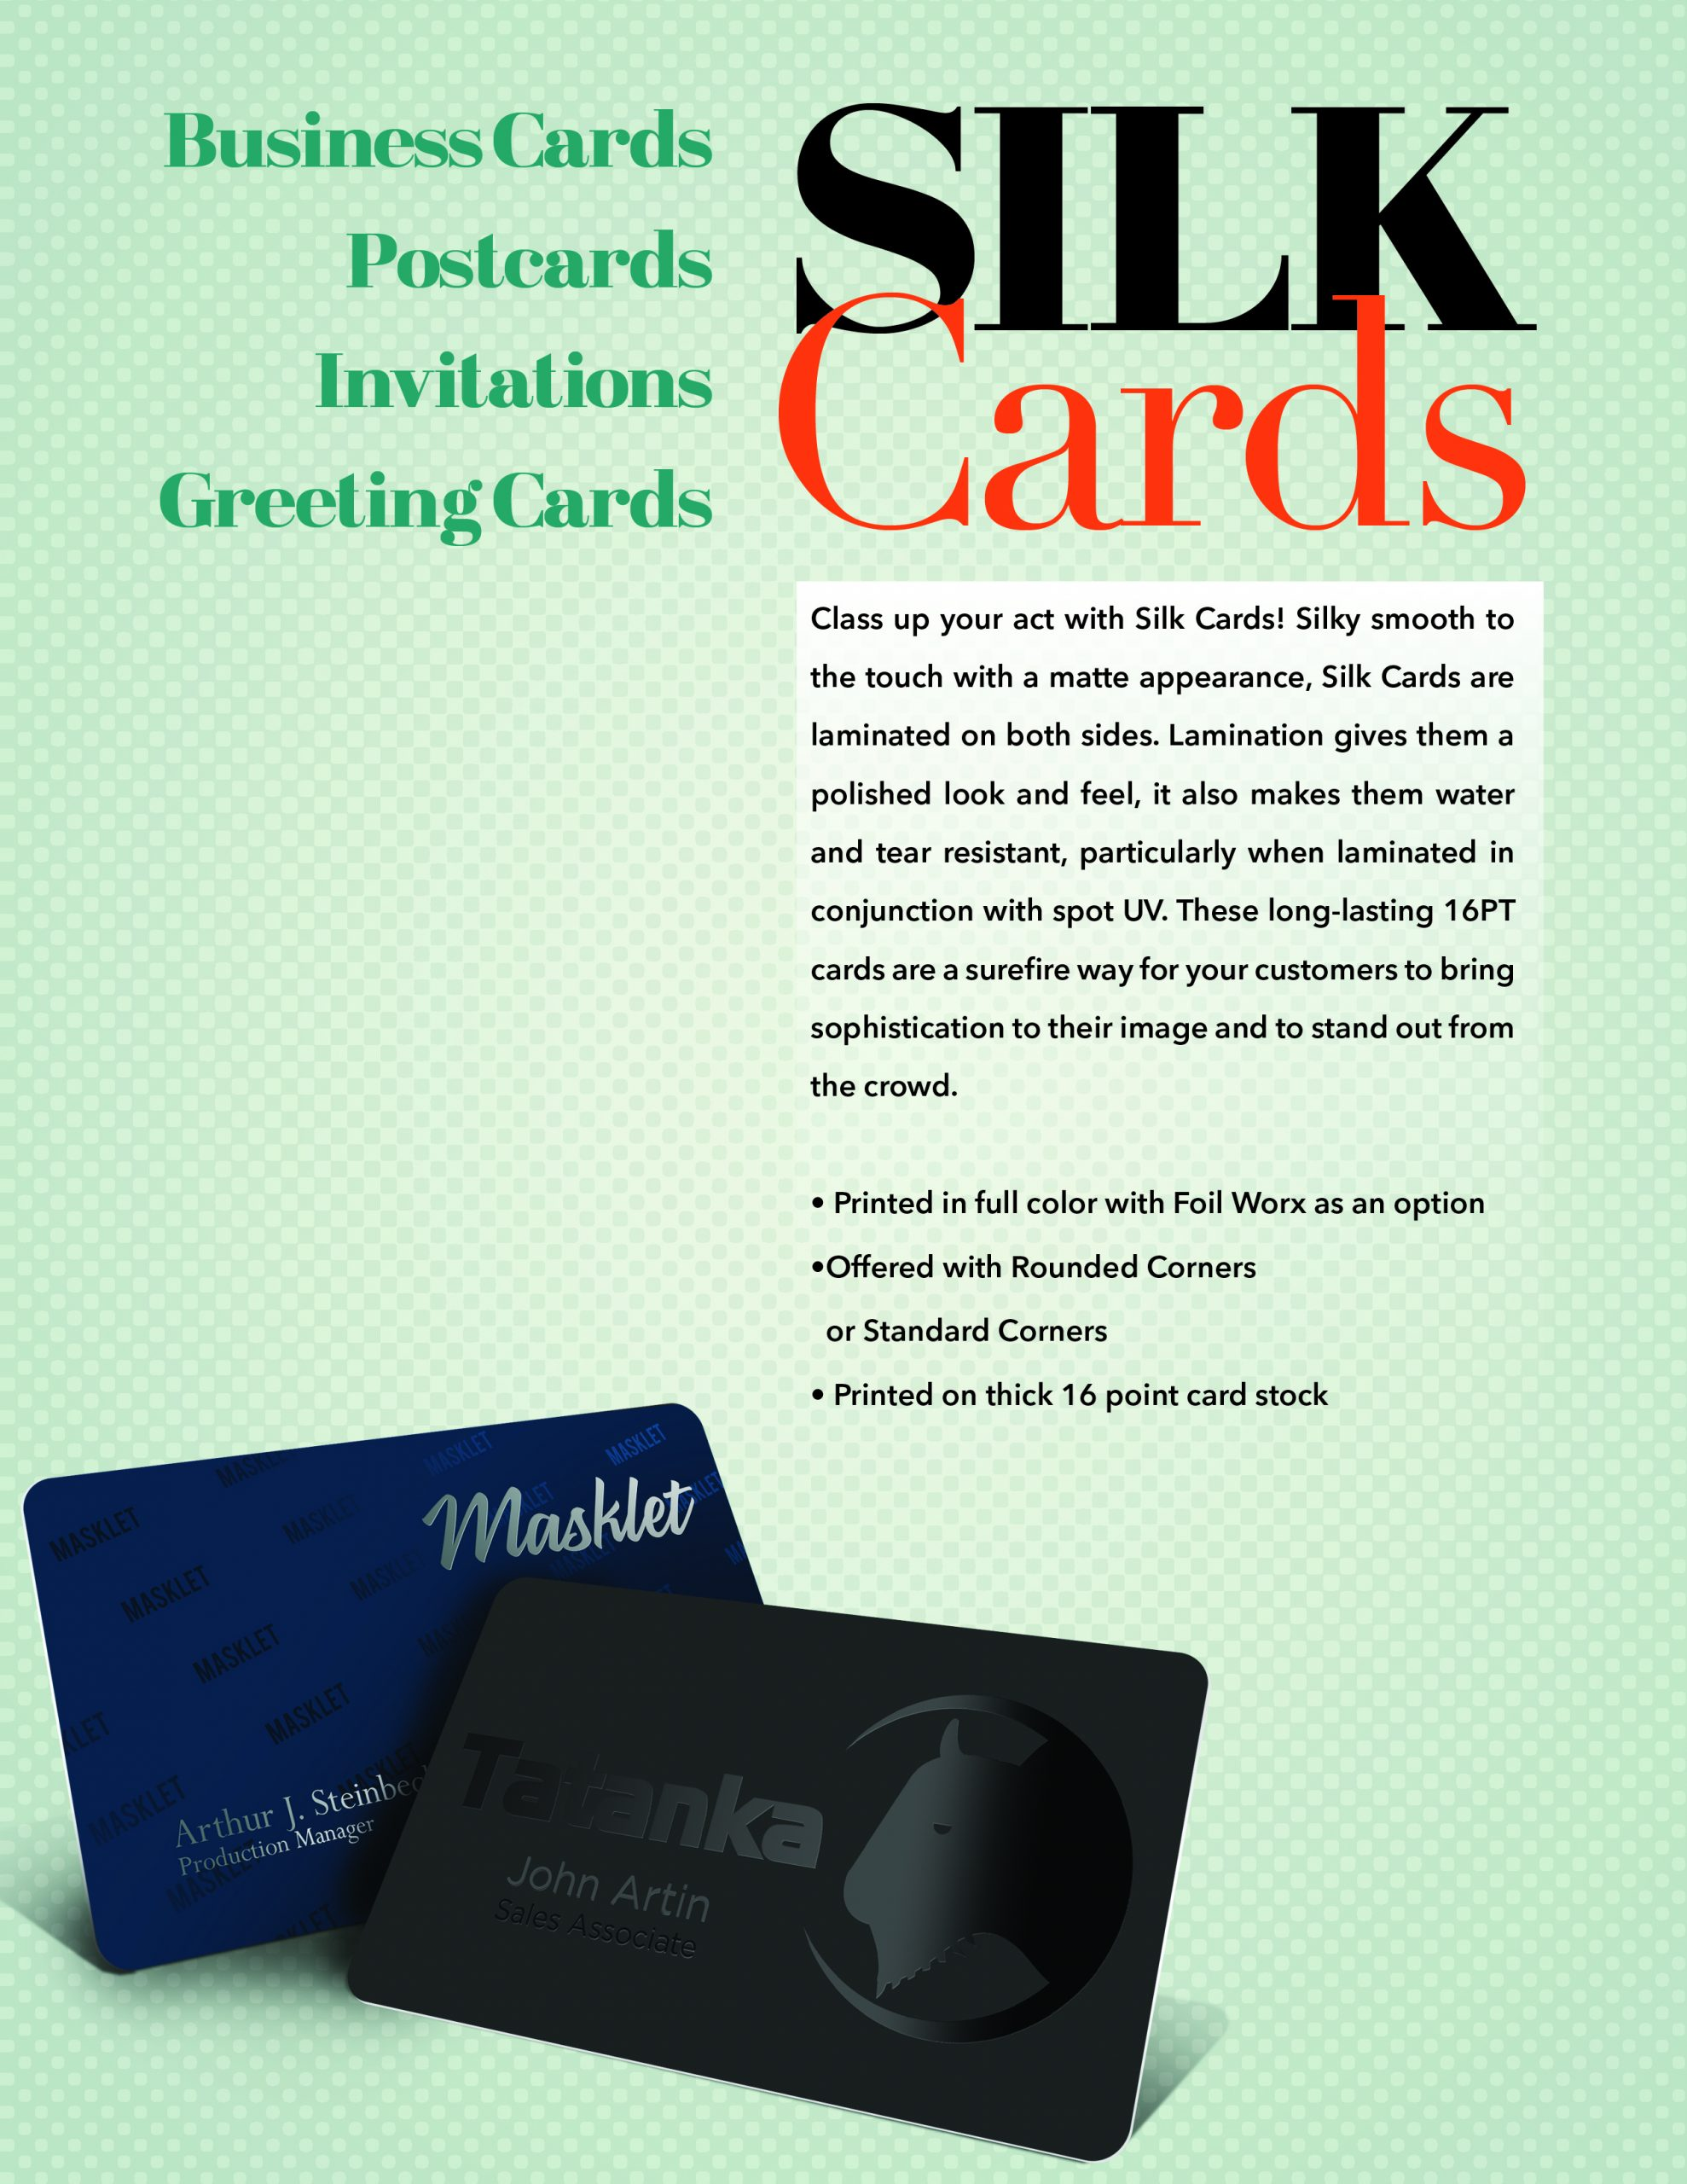 What's All the Hype about Silk Laminated Business Cards?